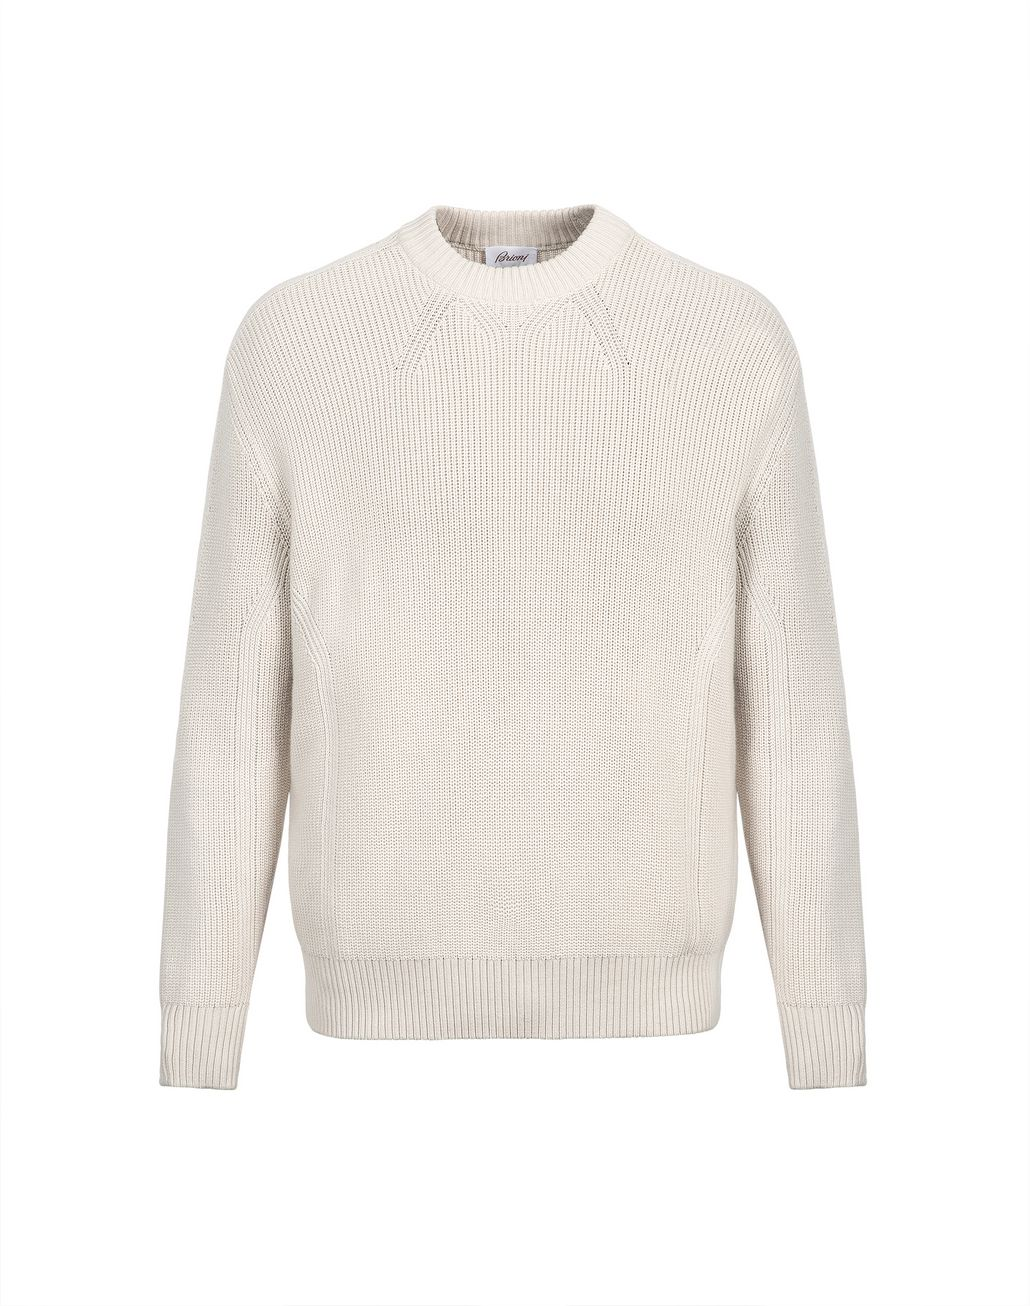 BRIONI Ivory Oversized Fit Sweater Knitwear Man f